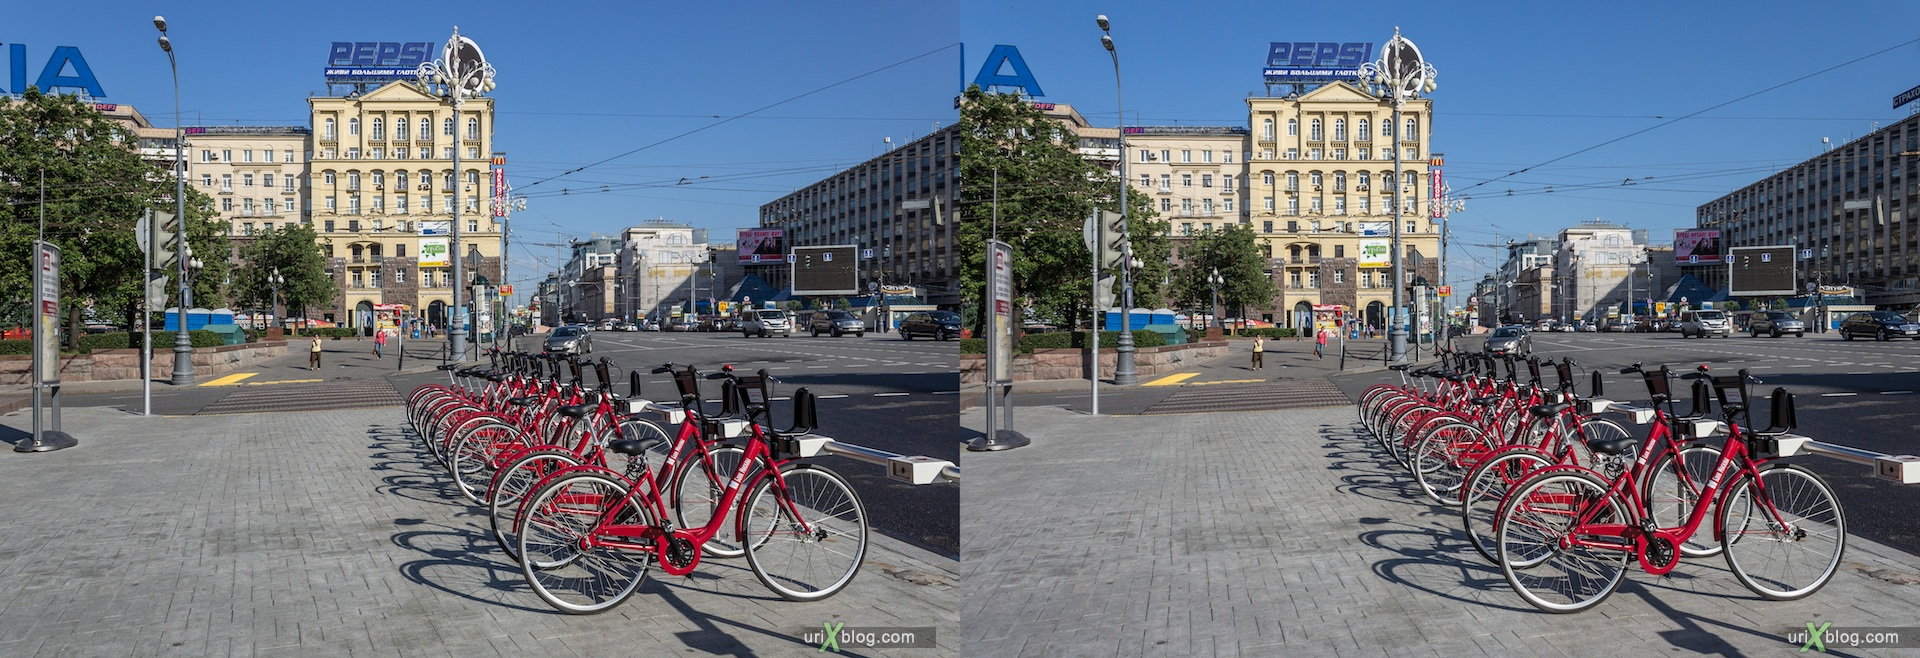 2013, rent, bike, bicycle, Pushkin square, Tverskaya, street, road, Moscow, Russia, 3D, stereo pair, cross-eyed, crossview, cross view stereo pair, stereoscopic